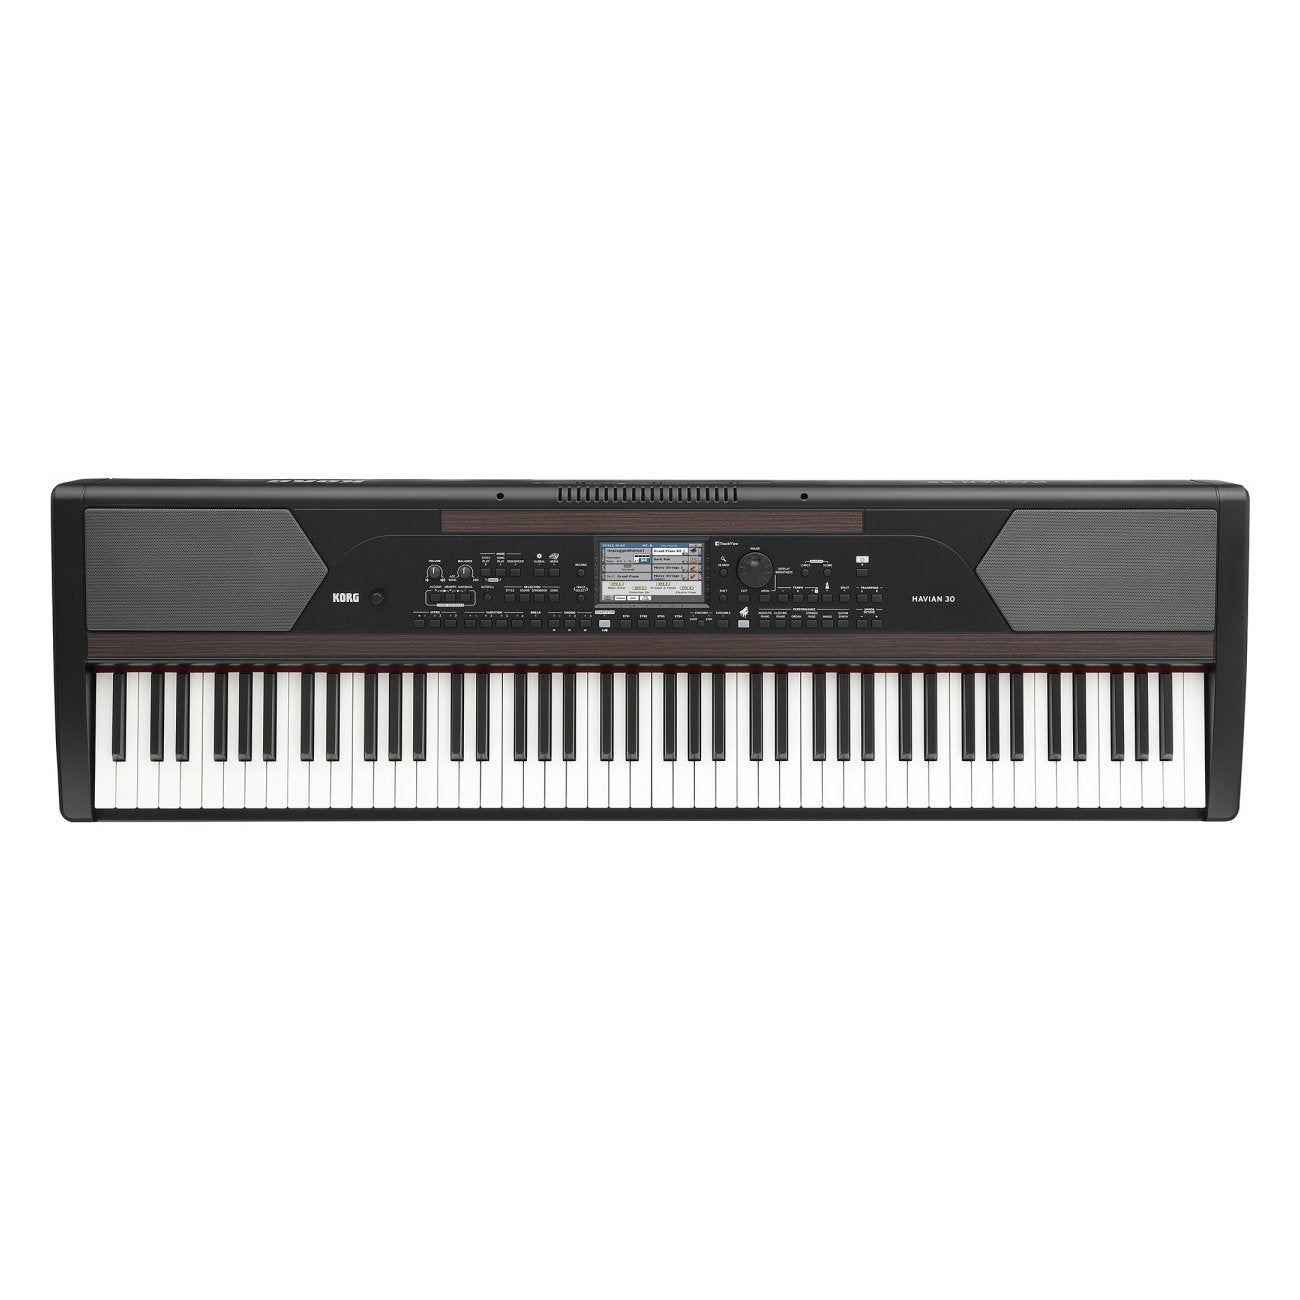 Korg - Havian 30 Digital Ensemble Piano